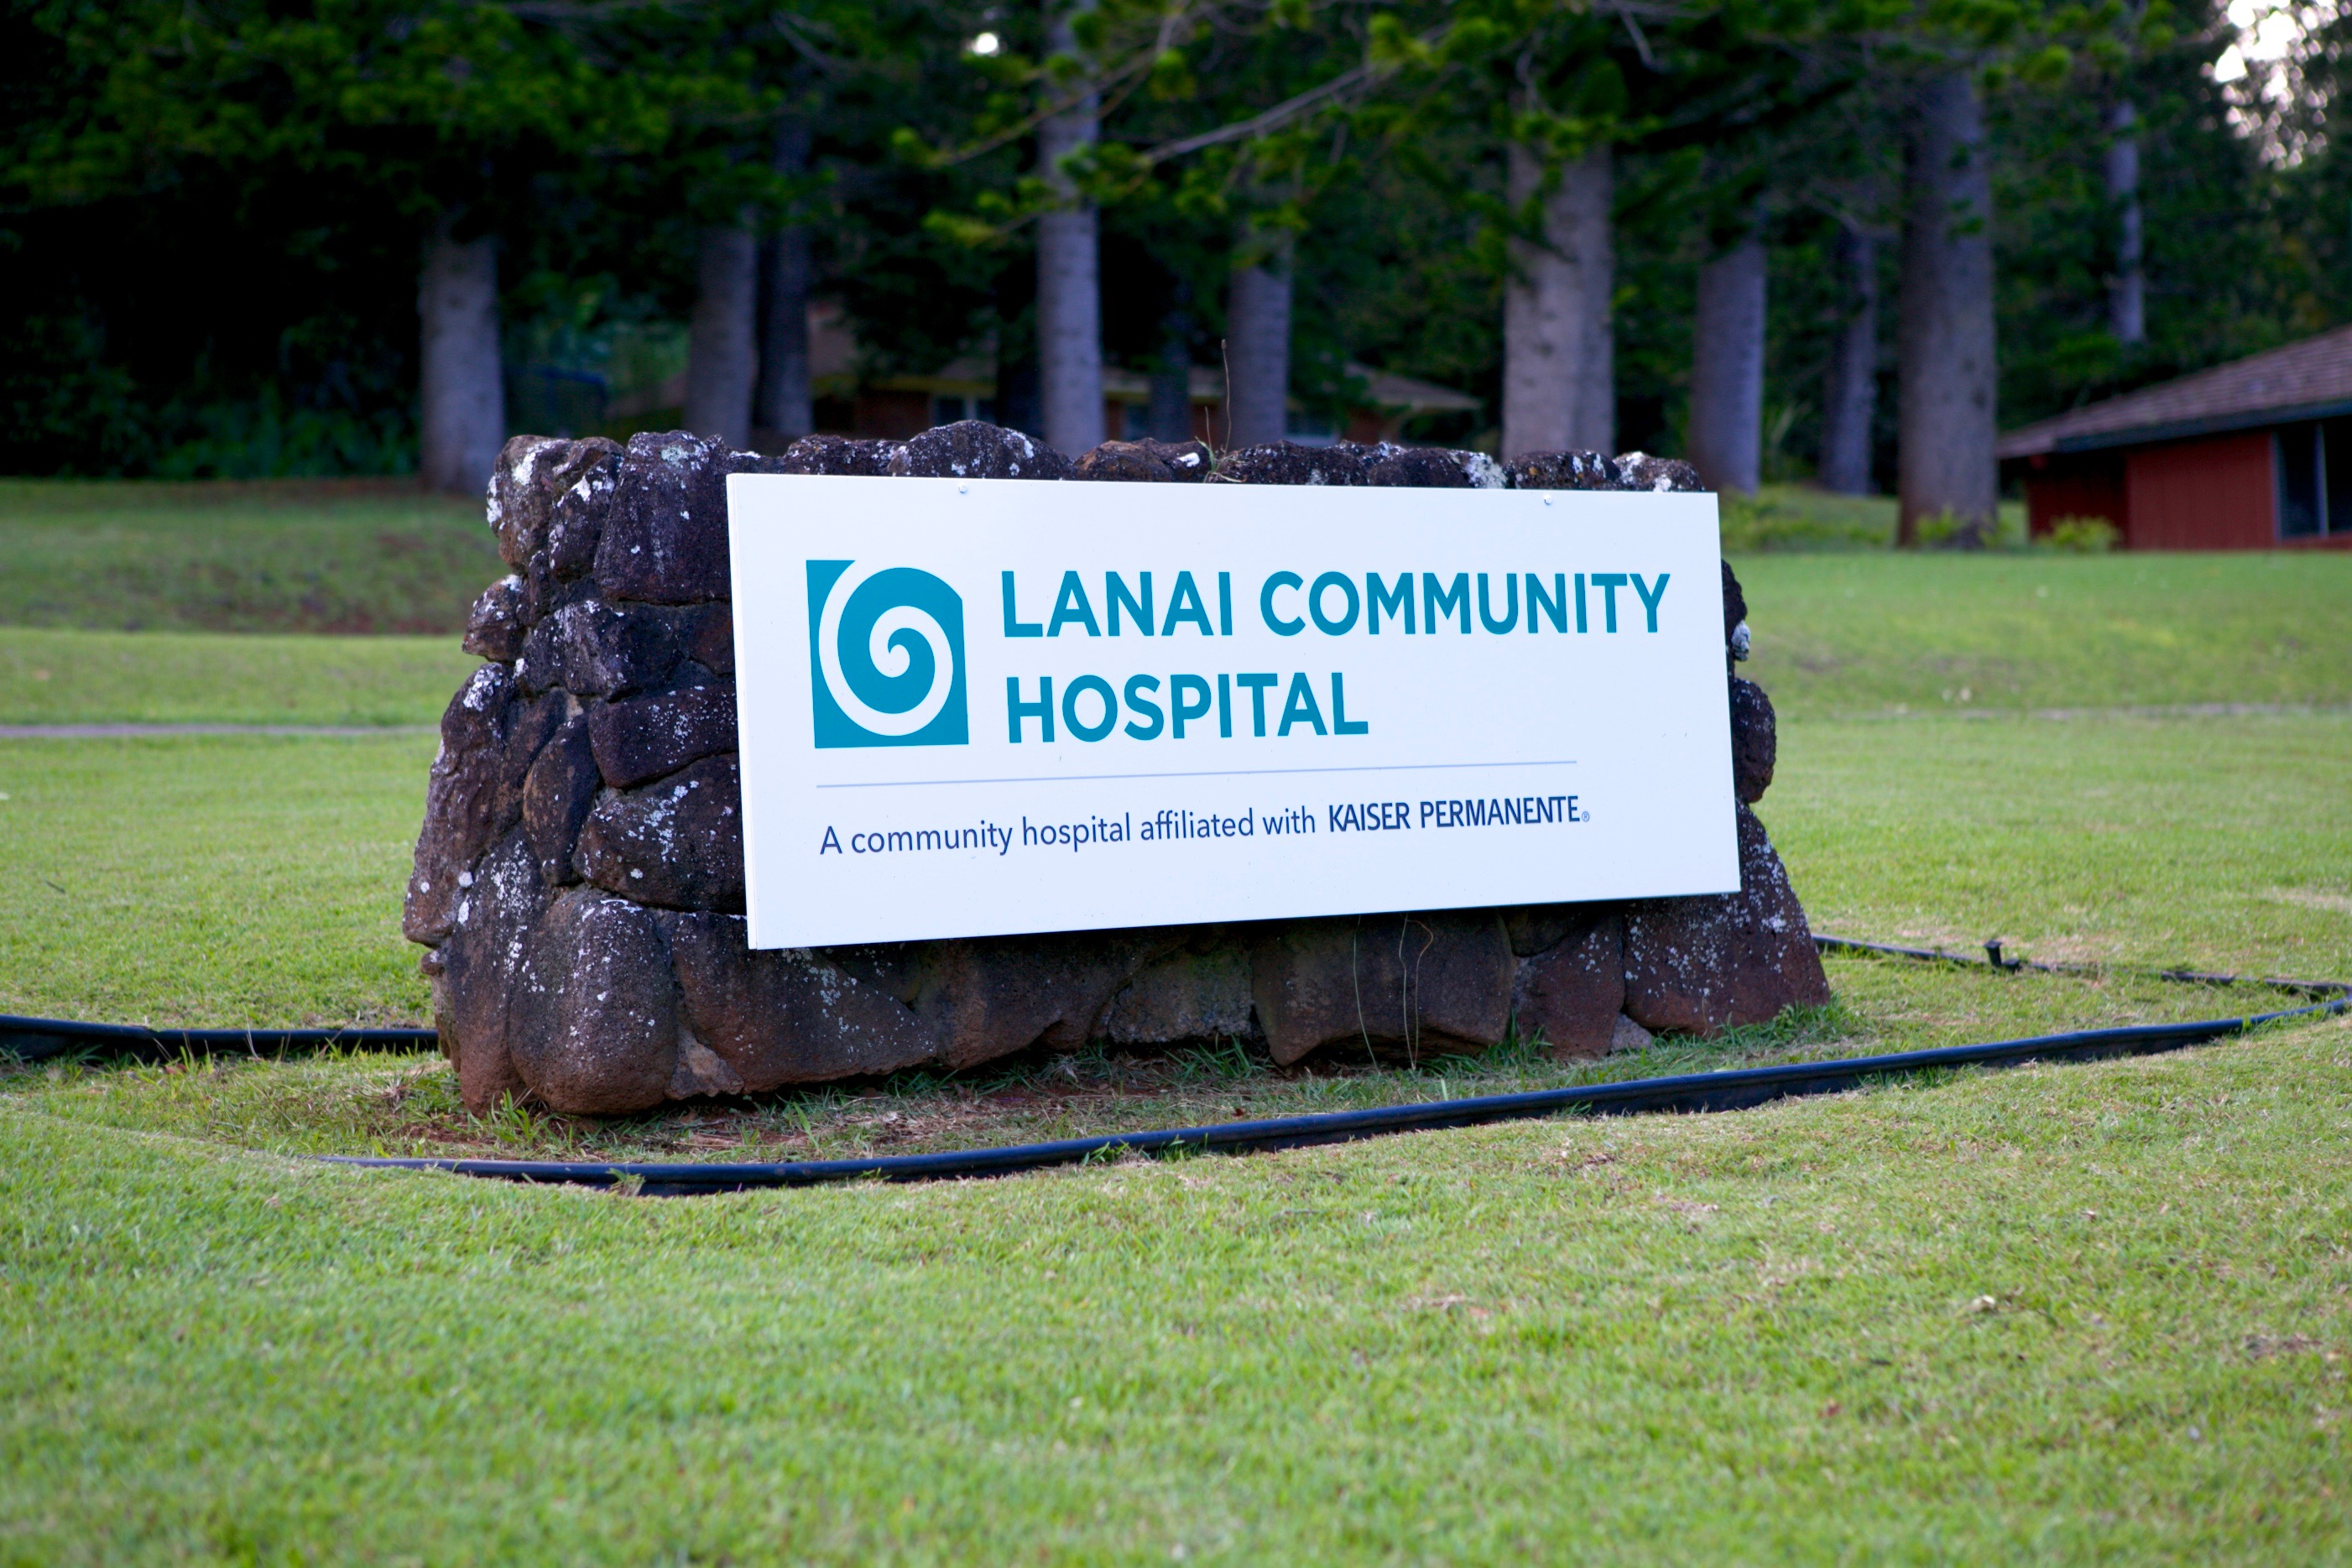 Exterior sign at Lanai Community Hospital